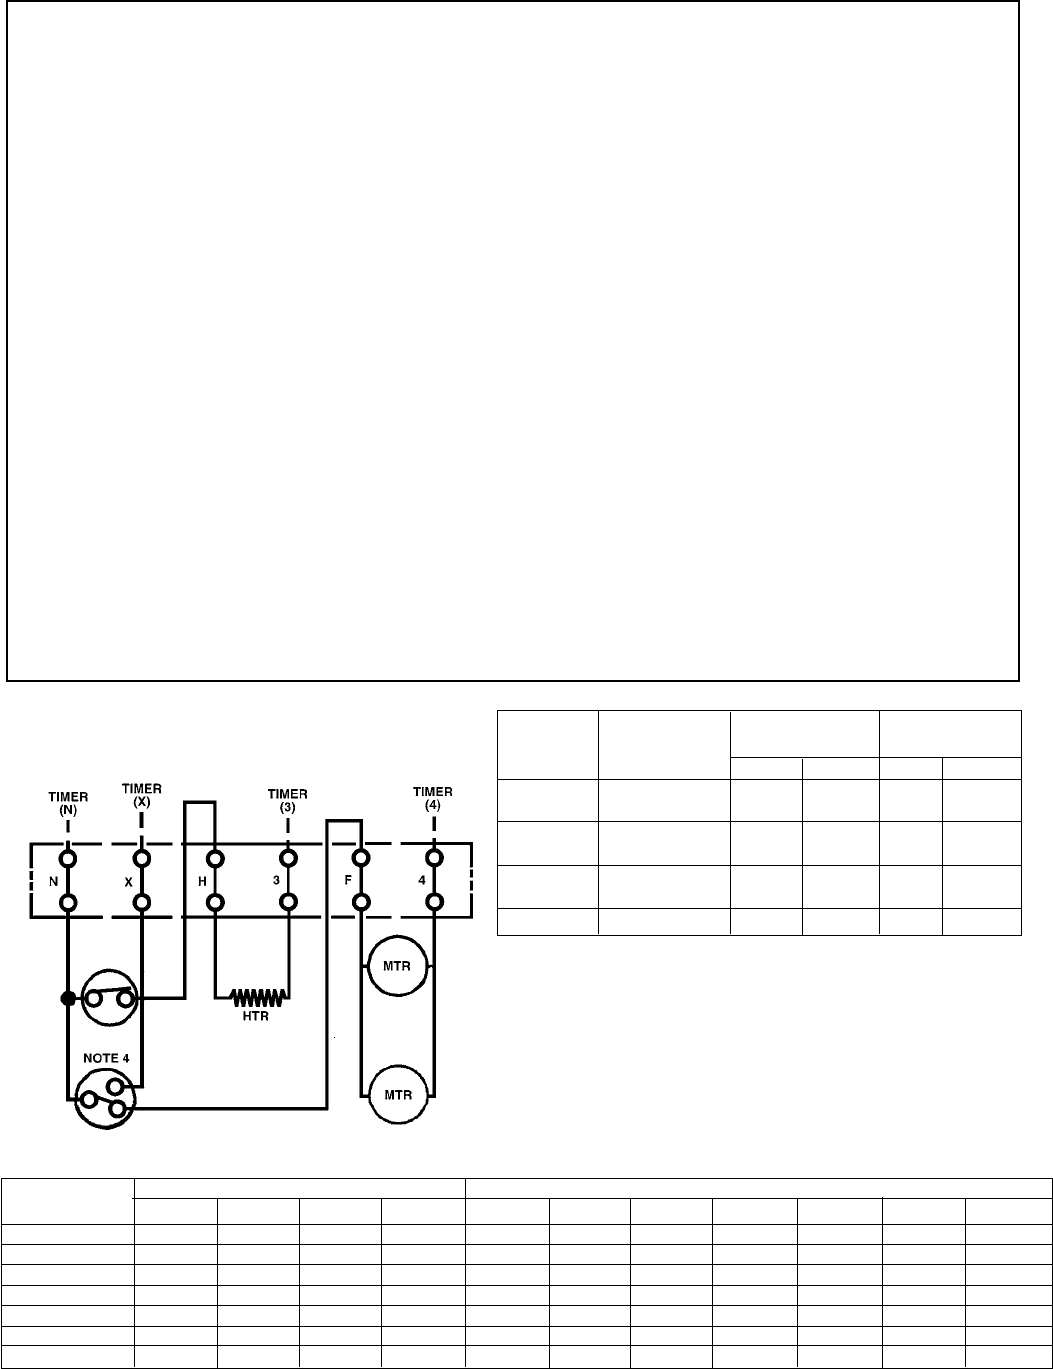 2f271777 ed48 431c affa 693c84f3fb6b bg8 page 8 of heatcraft refrigeration products humidifier 25005601 bohn evaporator wiring diagram at soozxer.org